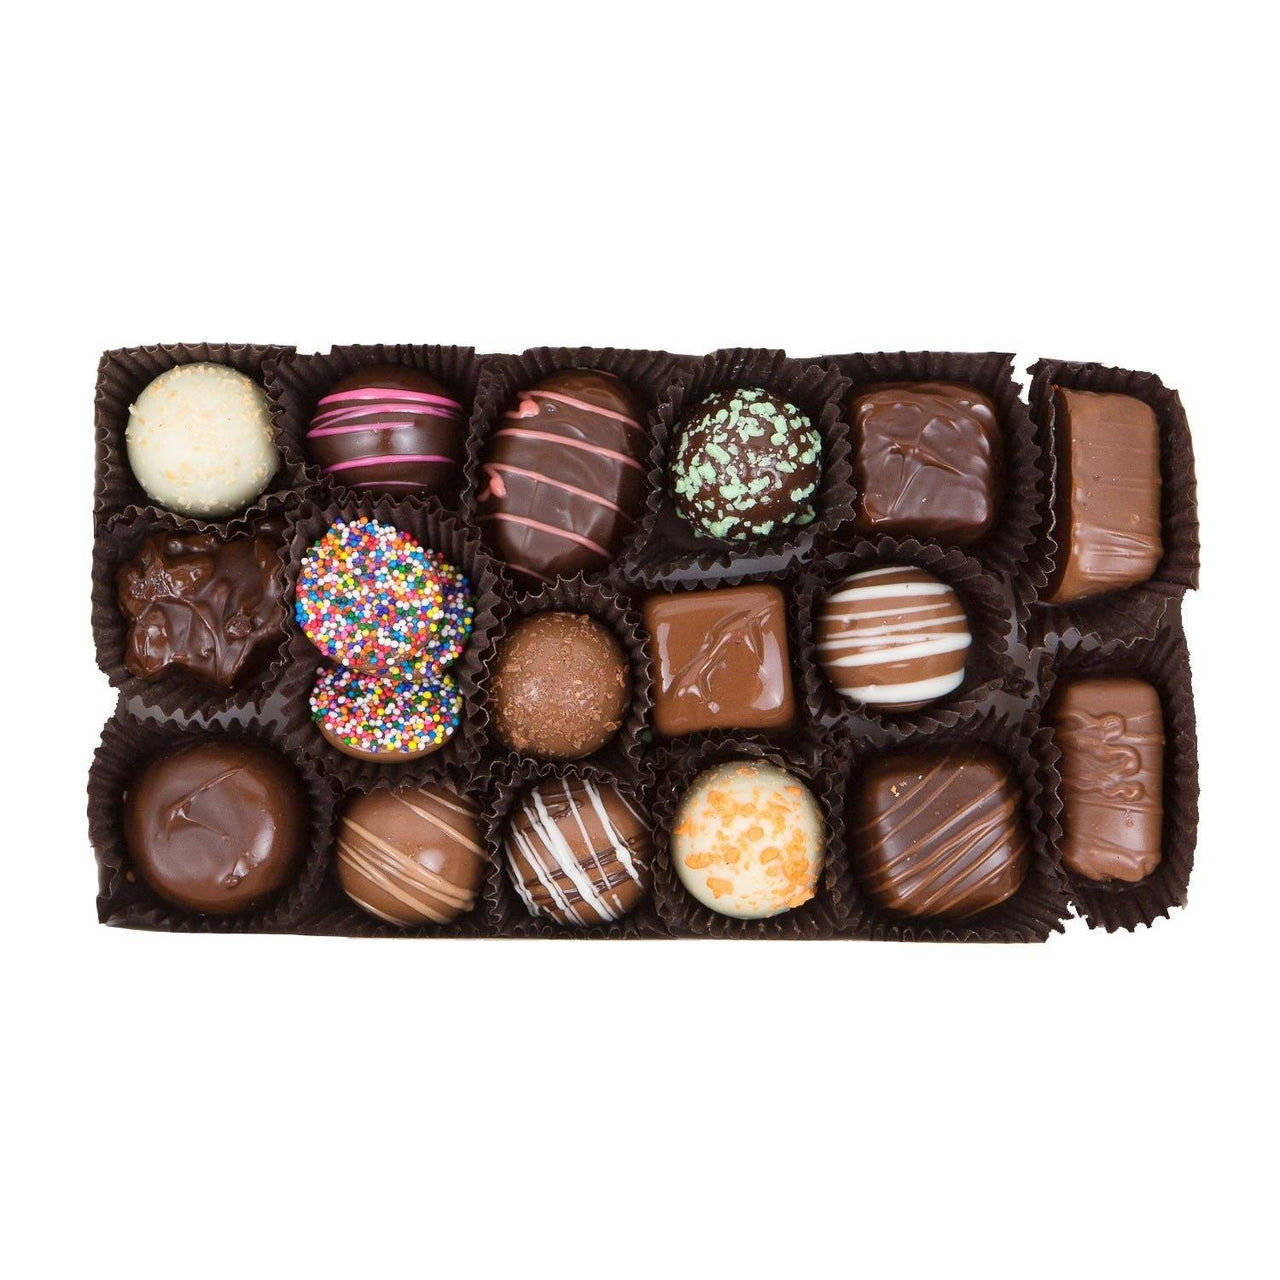 Gifts for Teenage Girls  - Chocolate Assortment Gift Box - Jackie's Chocolate (4336471474291)